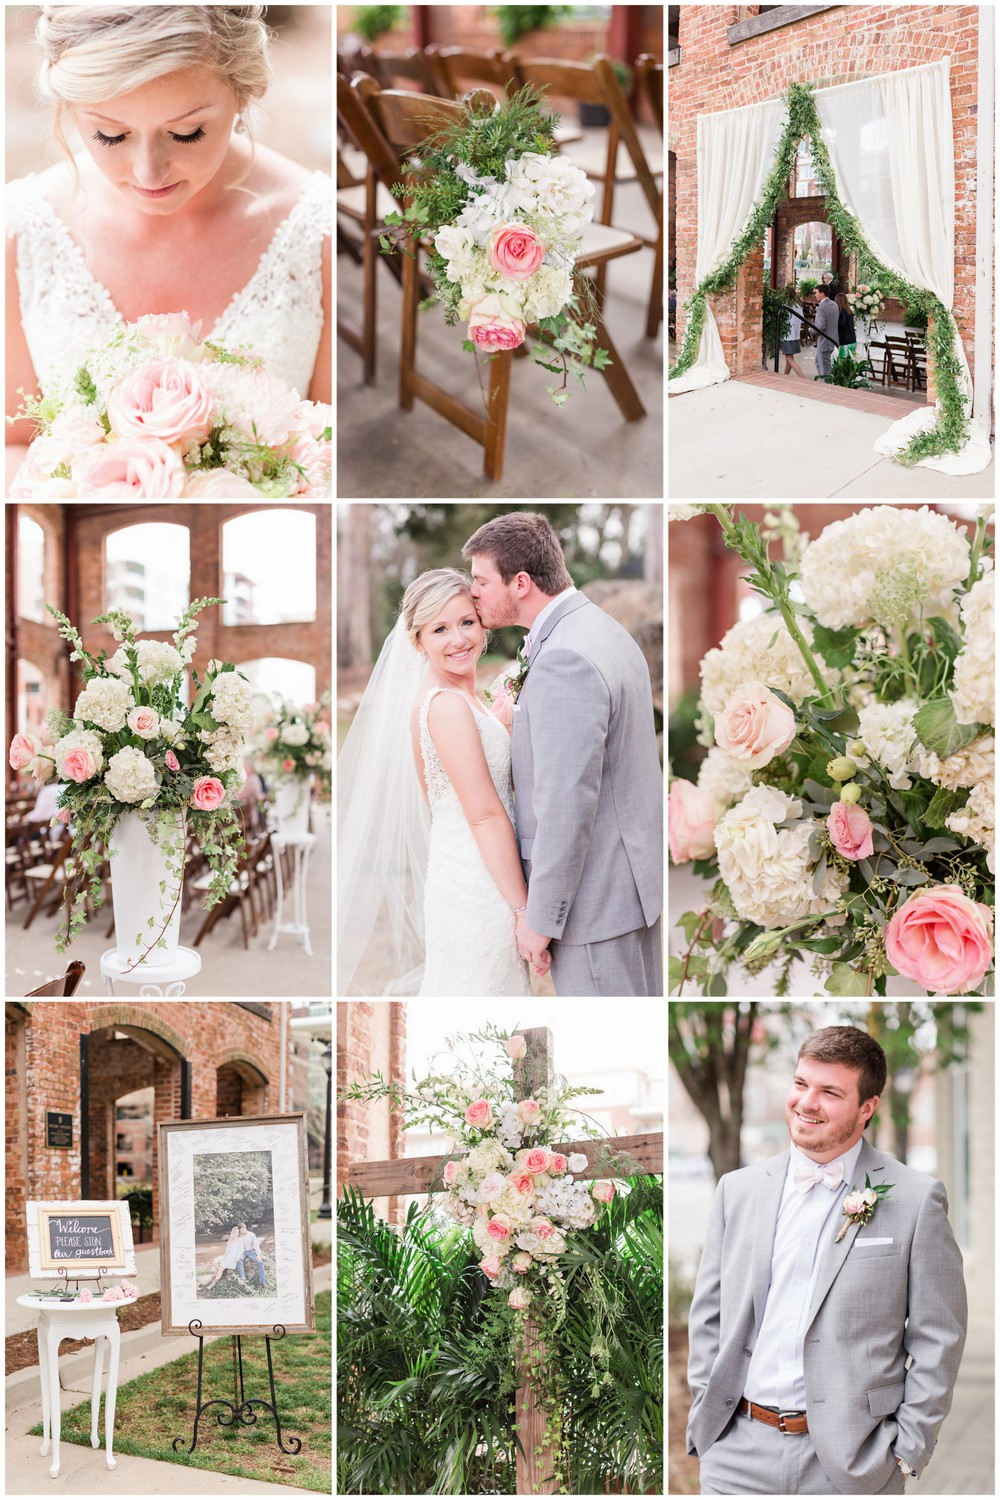 Blush Pink and White Spring Wedding